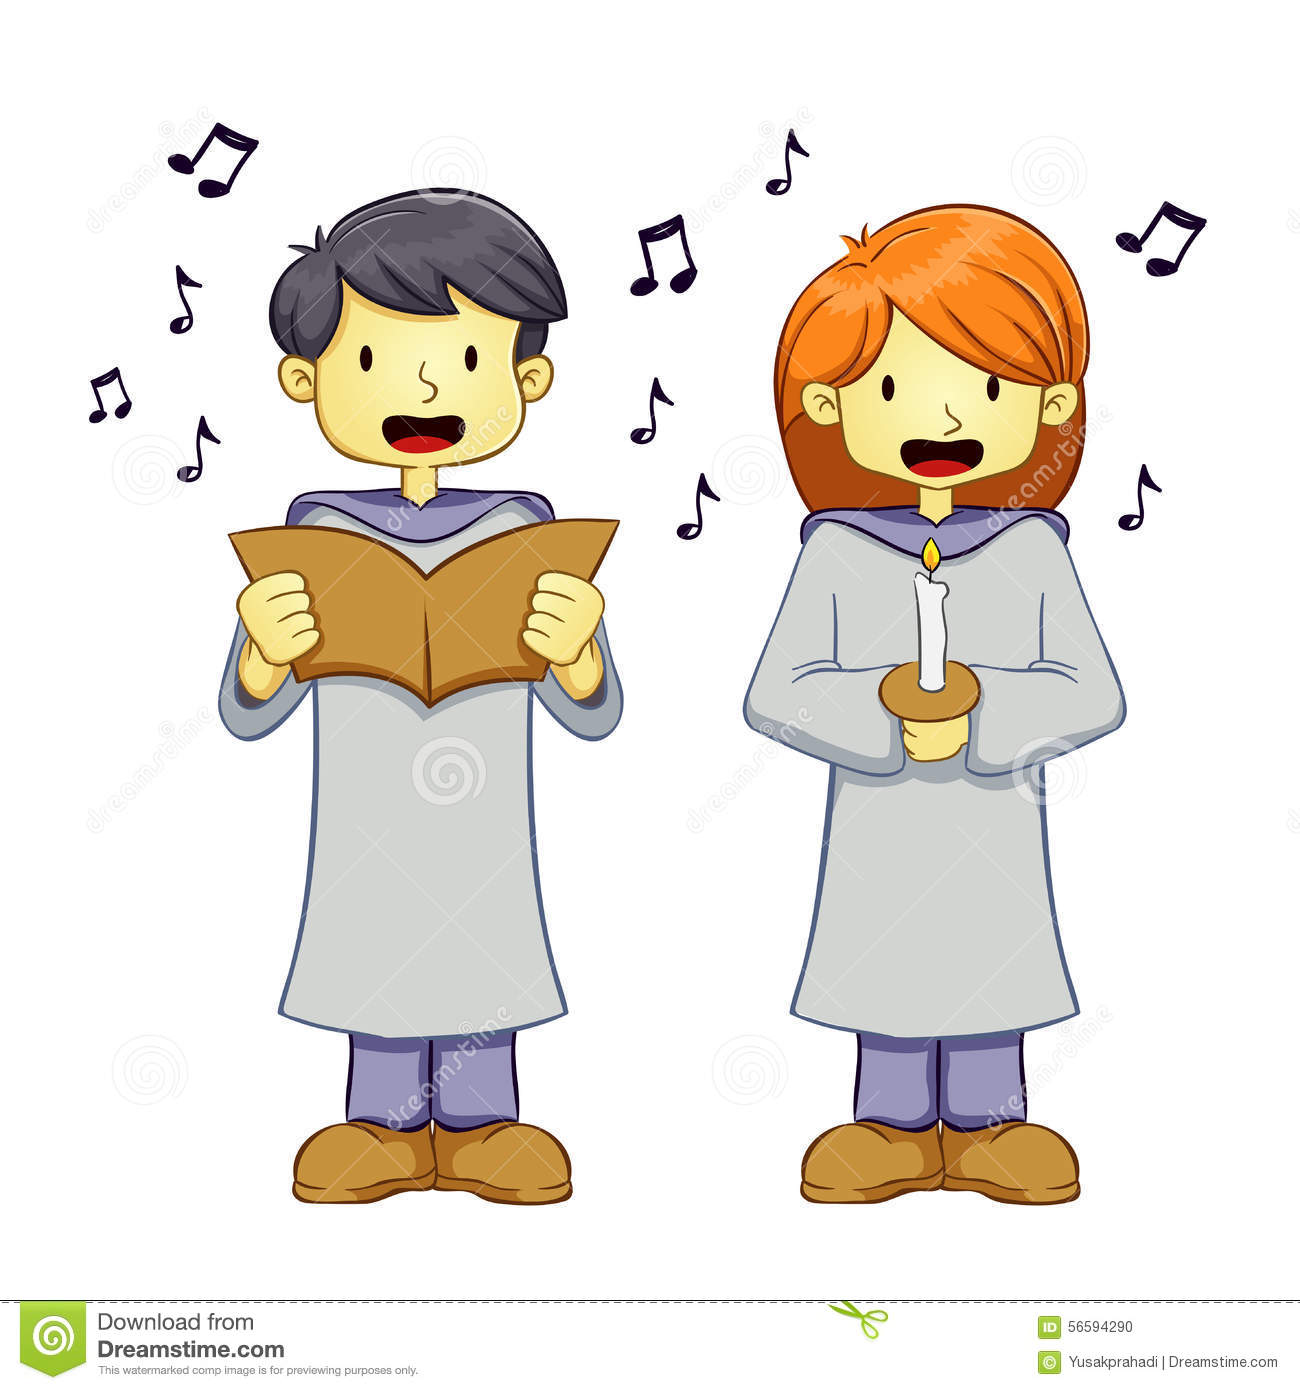 Image result for cartoon girl and boy singing images